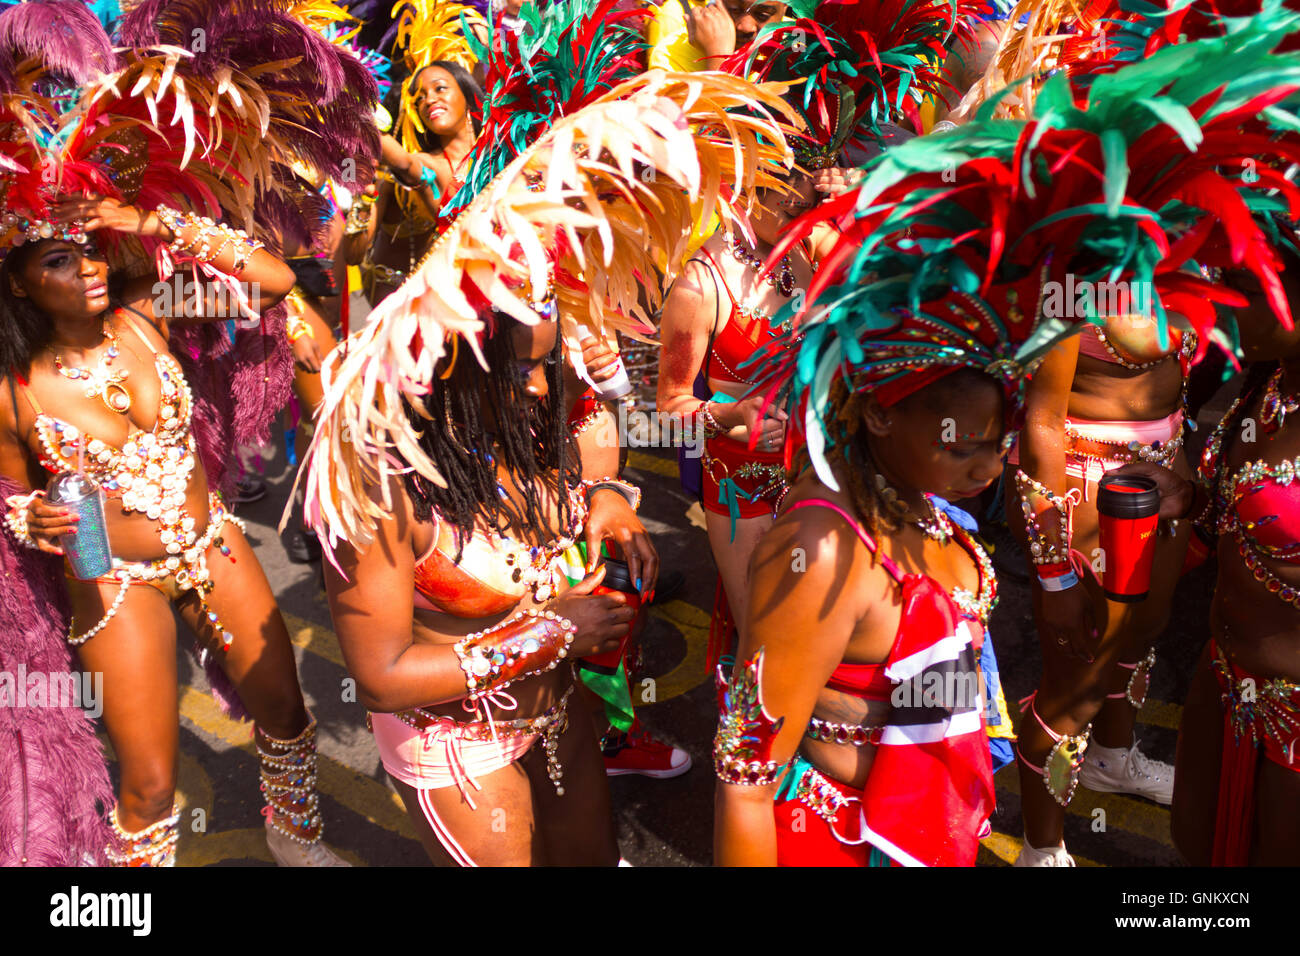 Carnival Masqueraders at the 50th Notting Hill Carnival, London, August 29 2016. - Stock Image